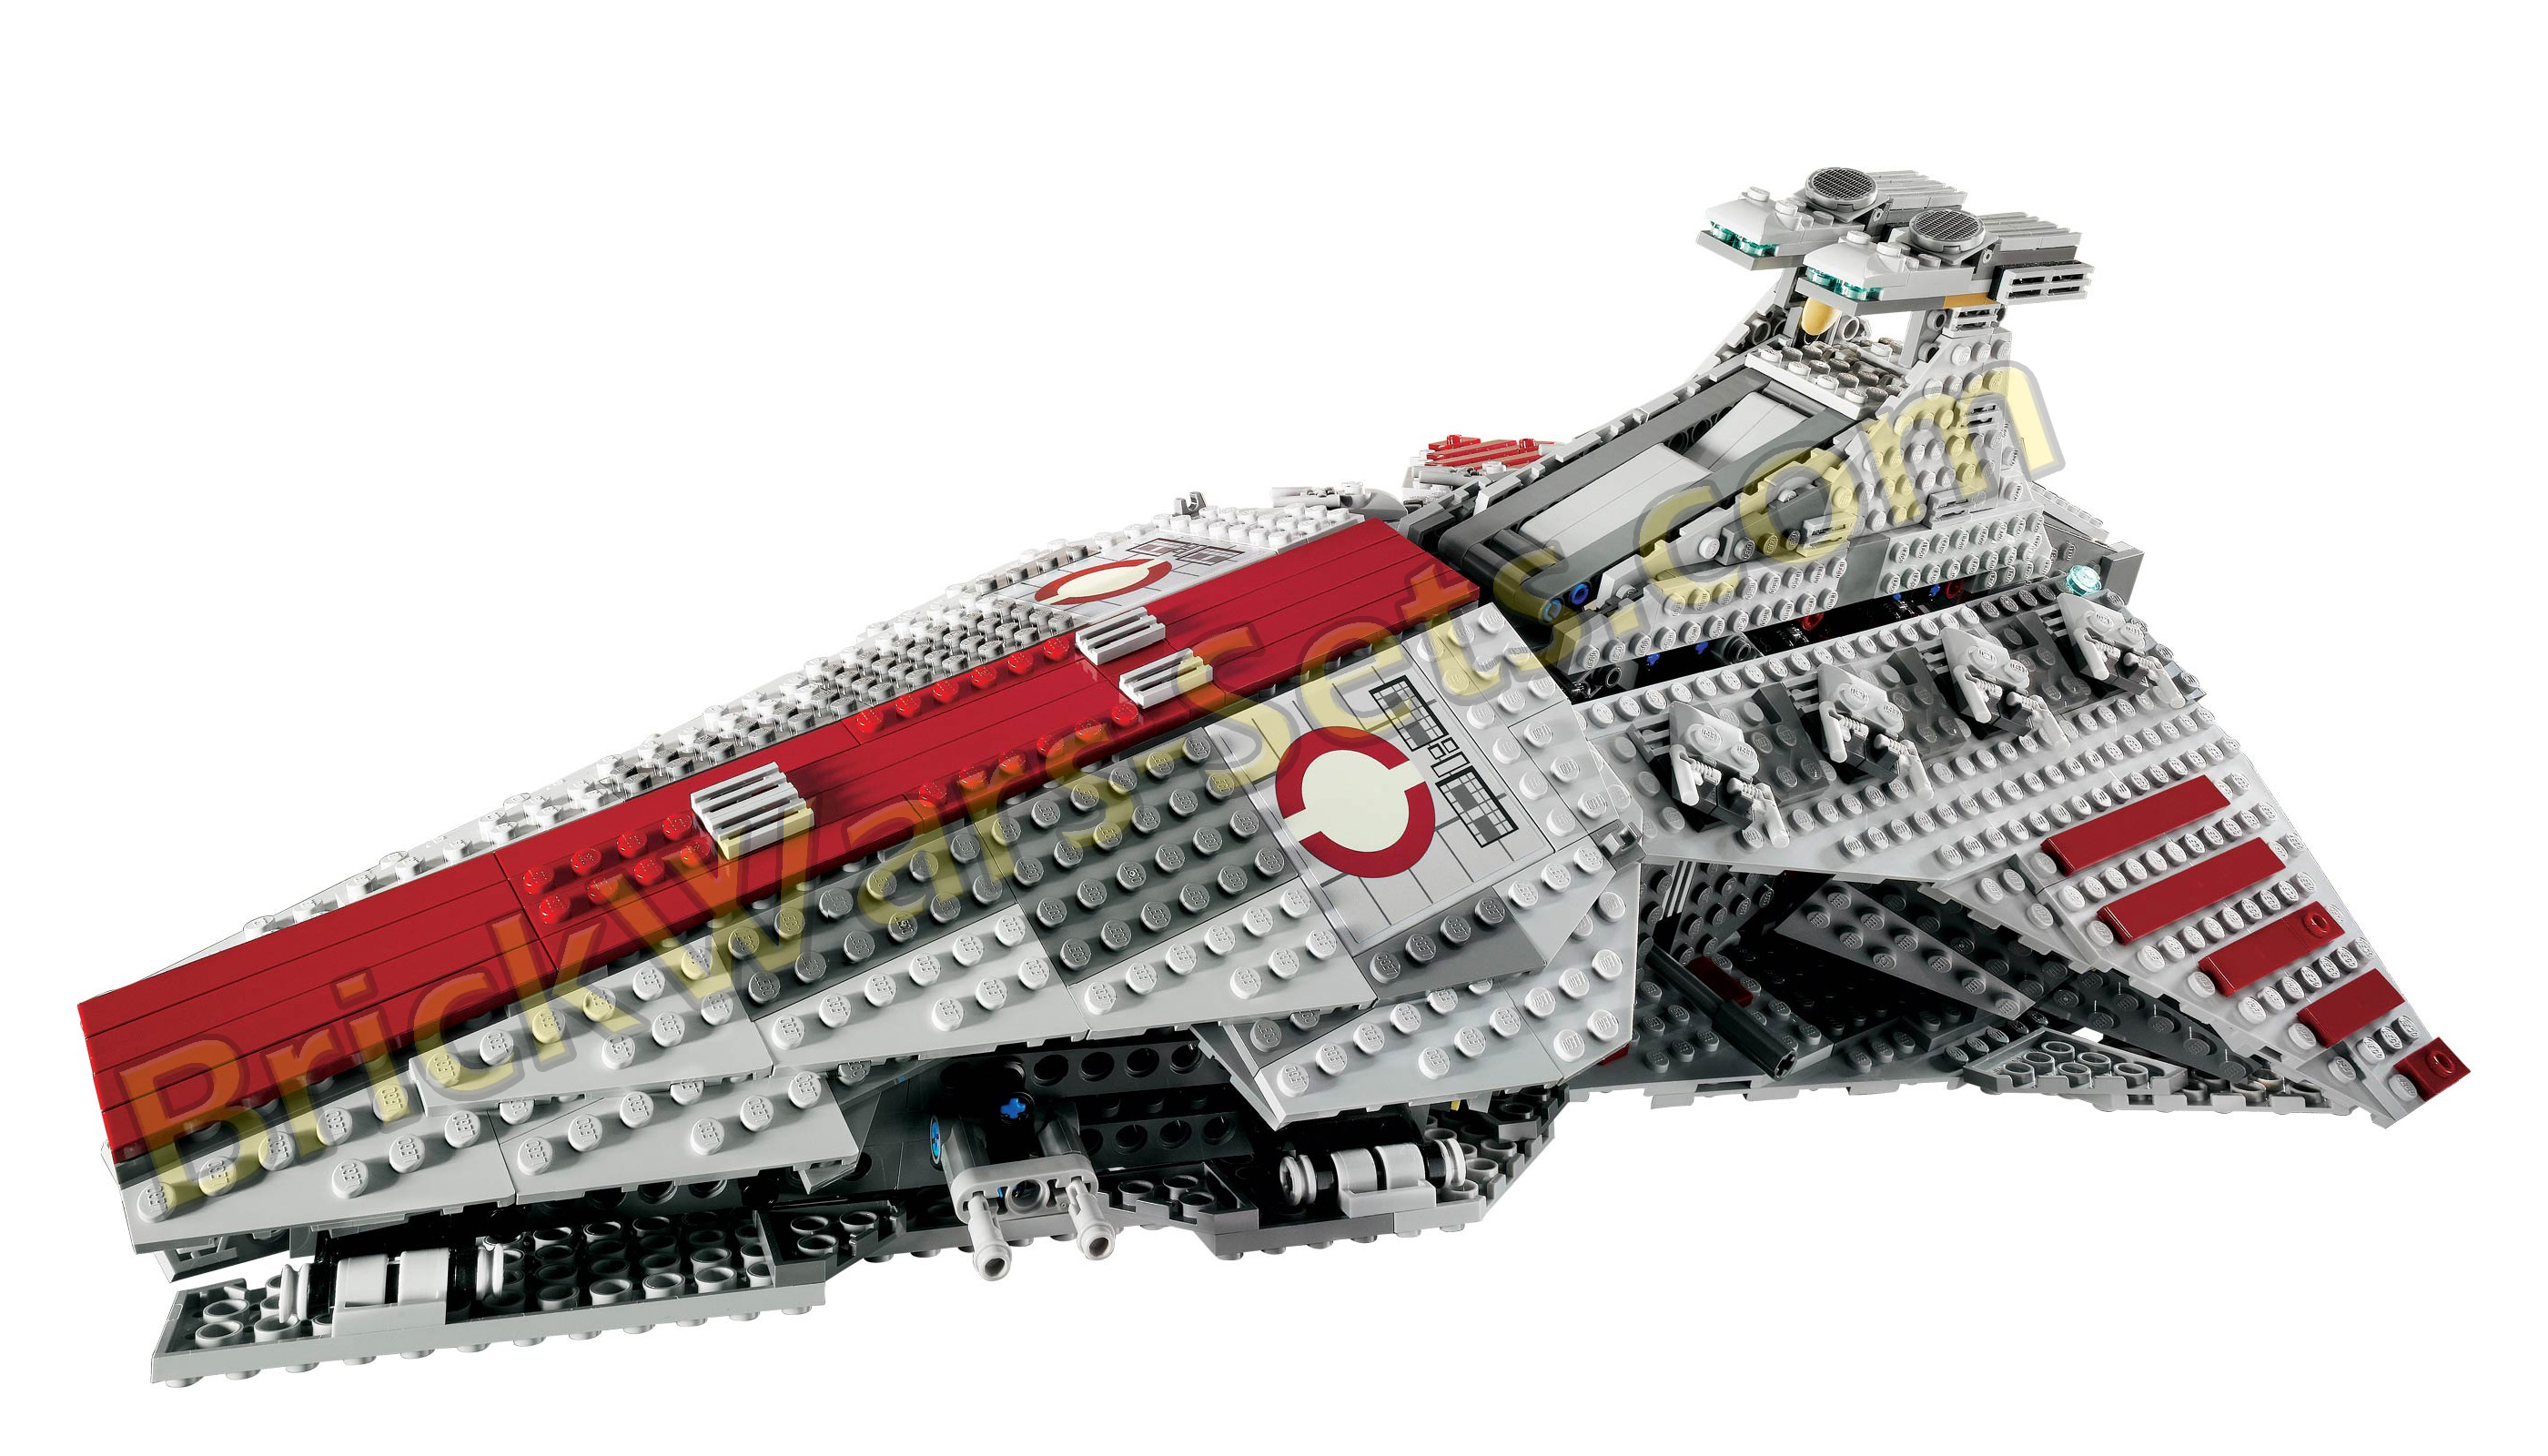 Lego 8039 Republic Attack Cruiser